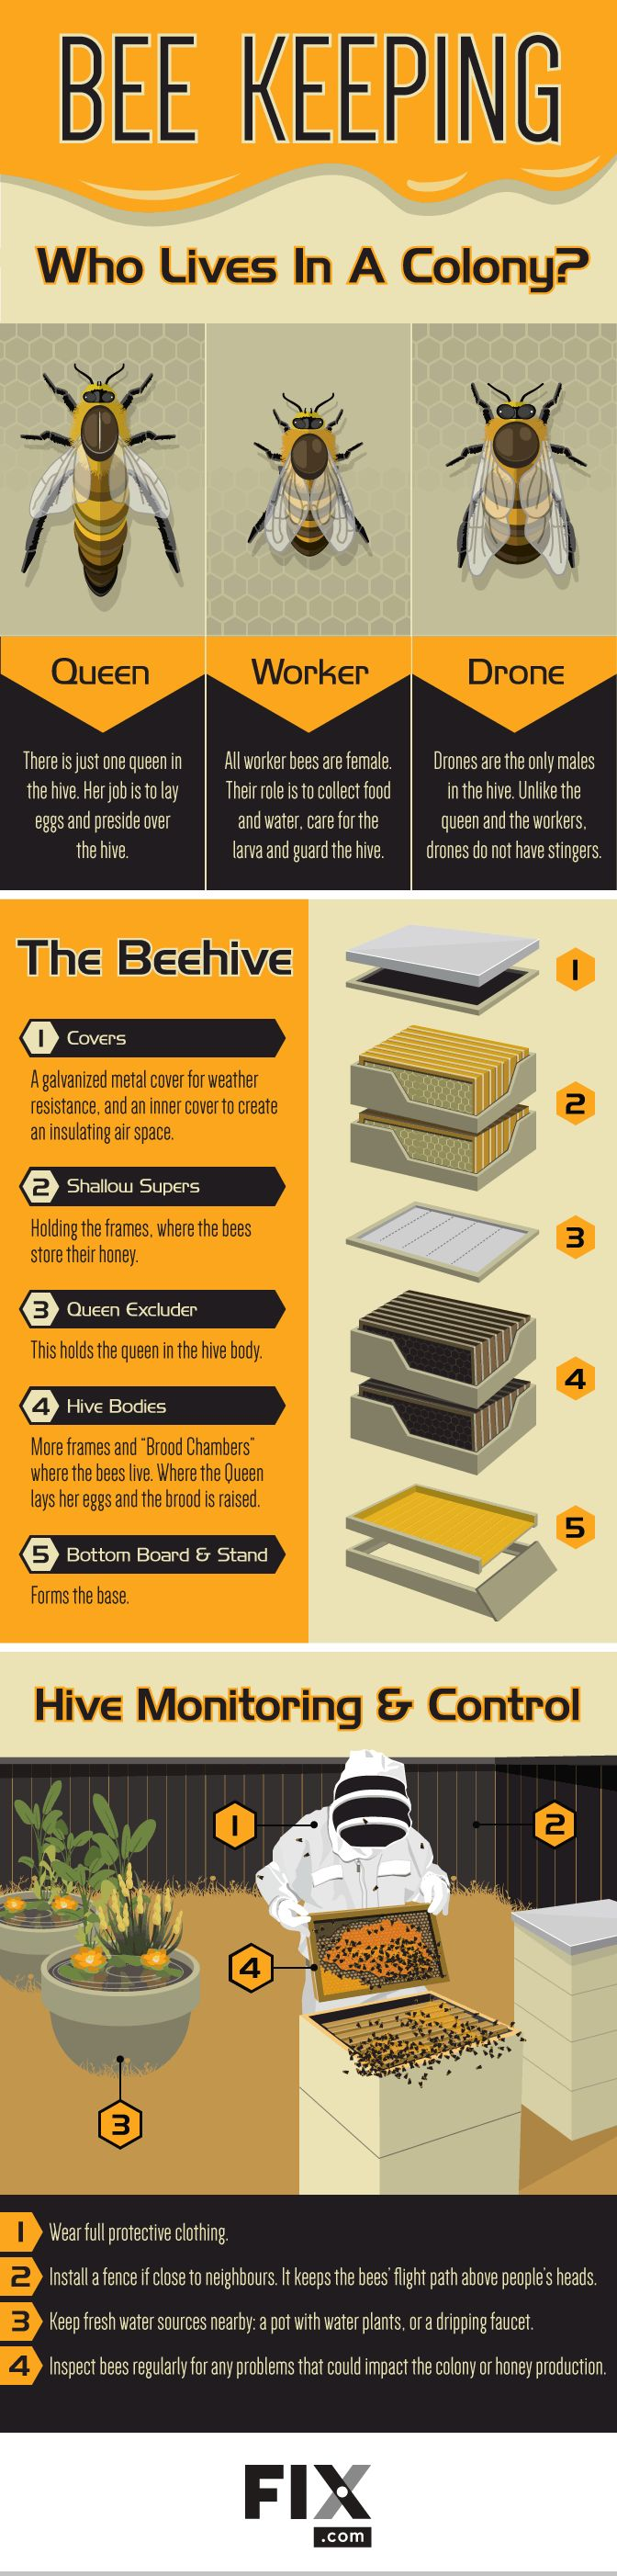 Become a Backyard Beekeeper #Infographic #Gardening                                                                                                                                                                                 More